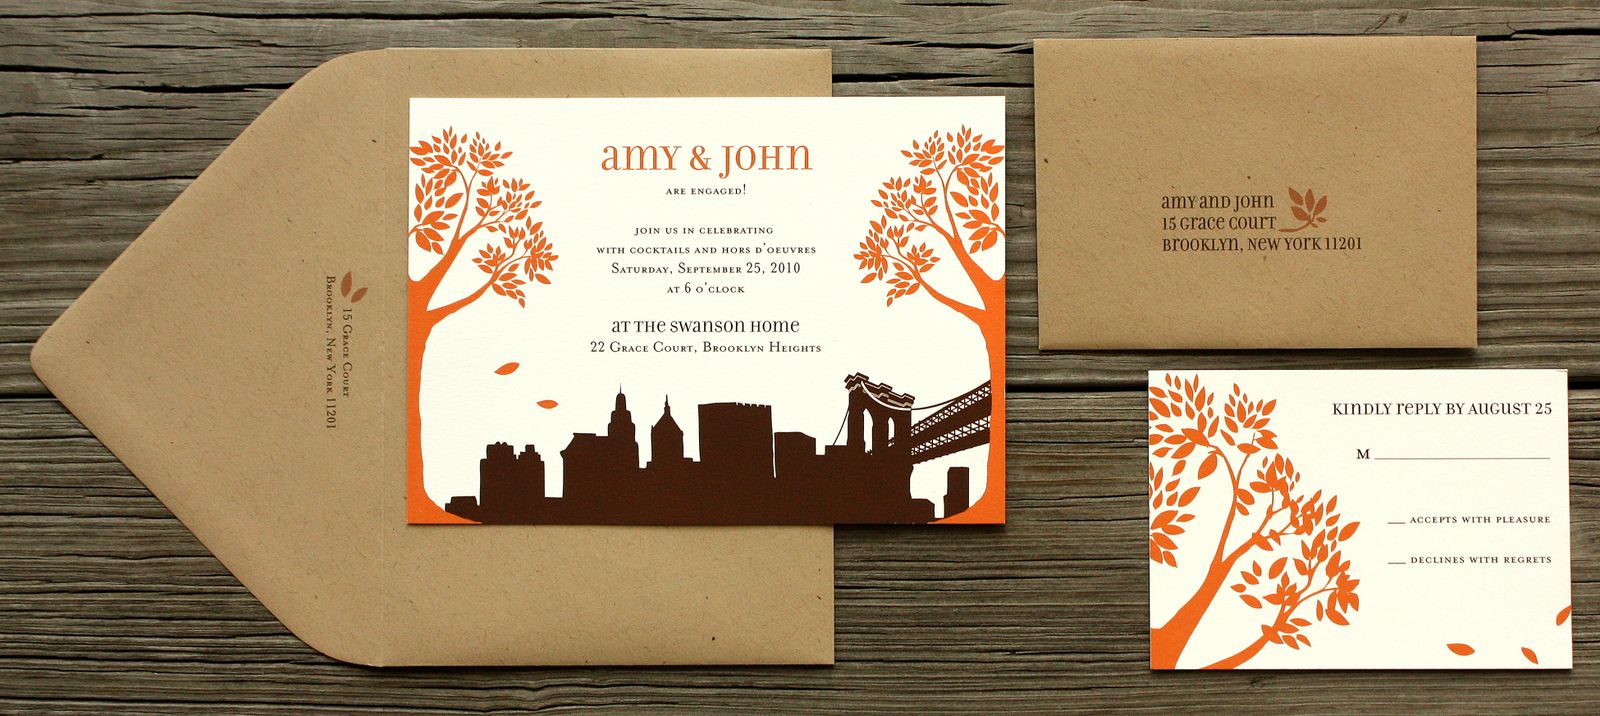 Custom Wedding Invitations Nyc – Custom Wedding Invitations Nyc